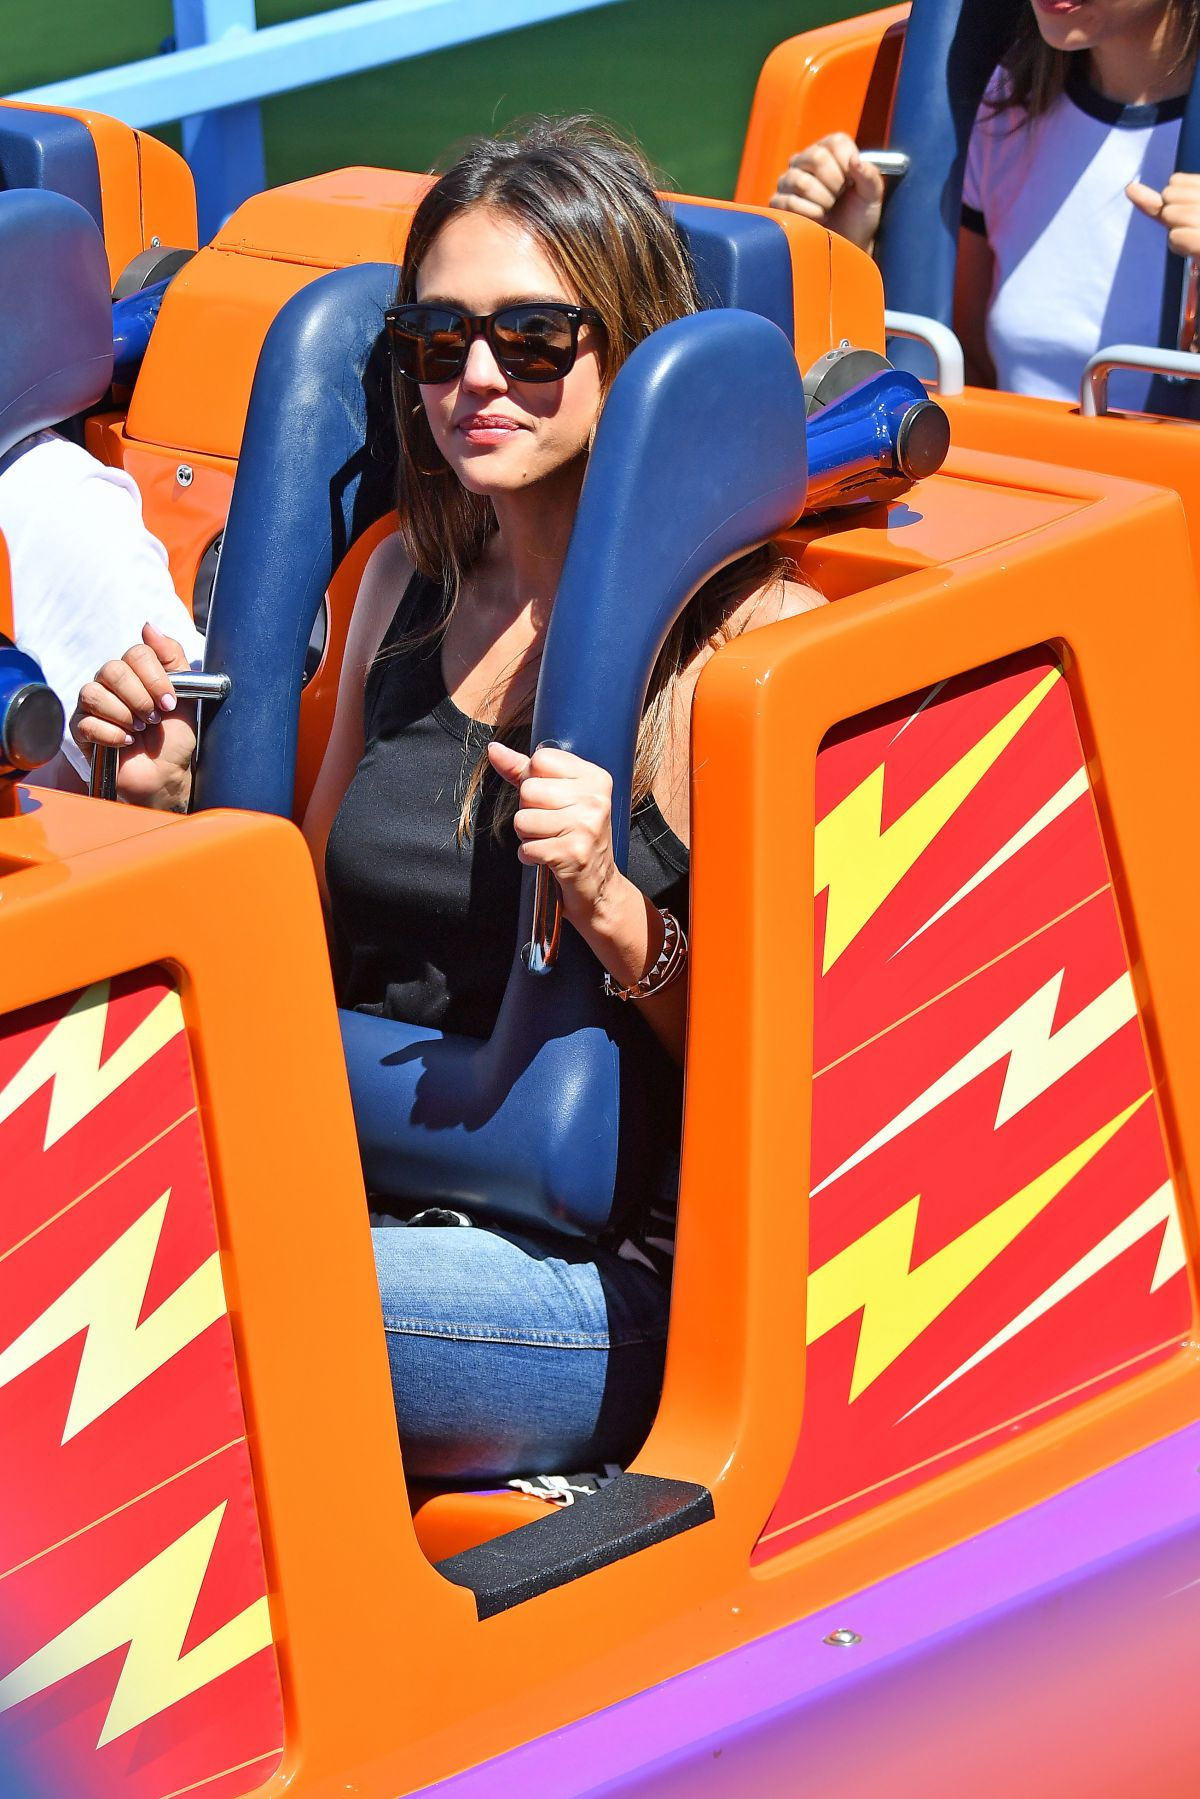 http://www.hawtcelebs.com/wp-content/uploads/2017/04/jessica-alba-out-at-disneyland-in-anaheim-03-30-2017_6.jpg